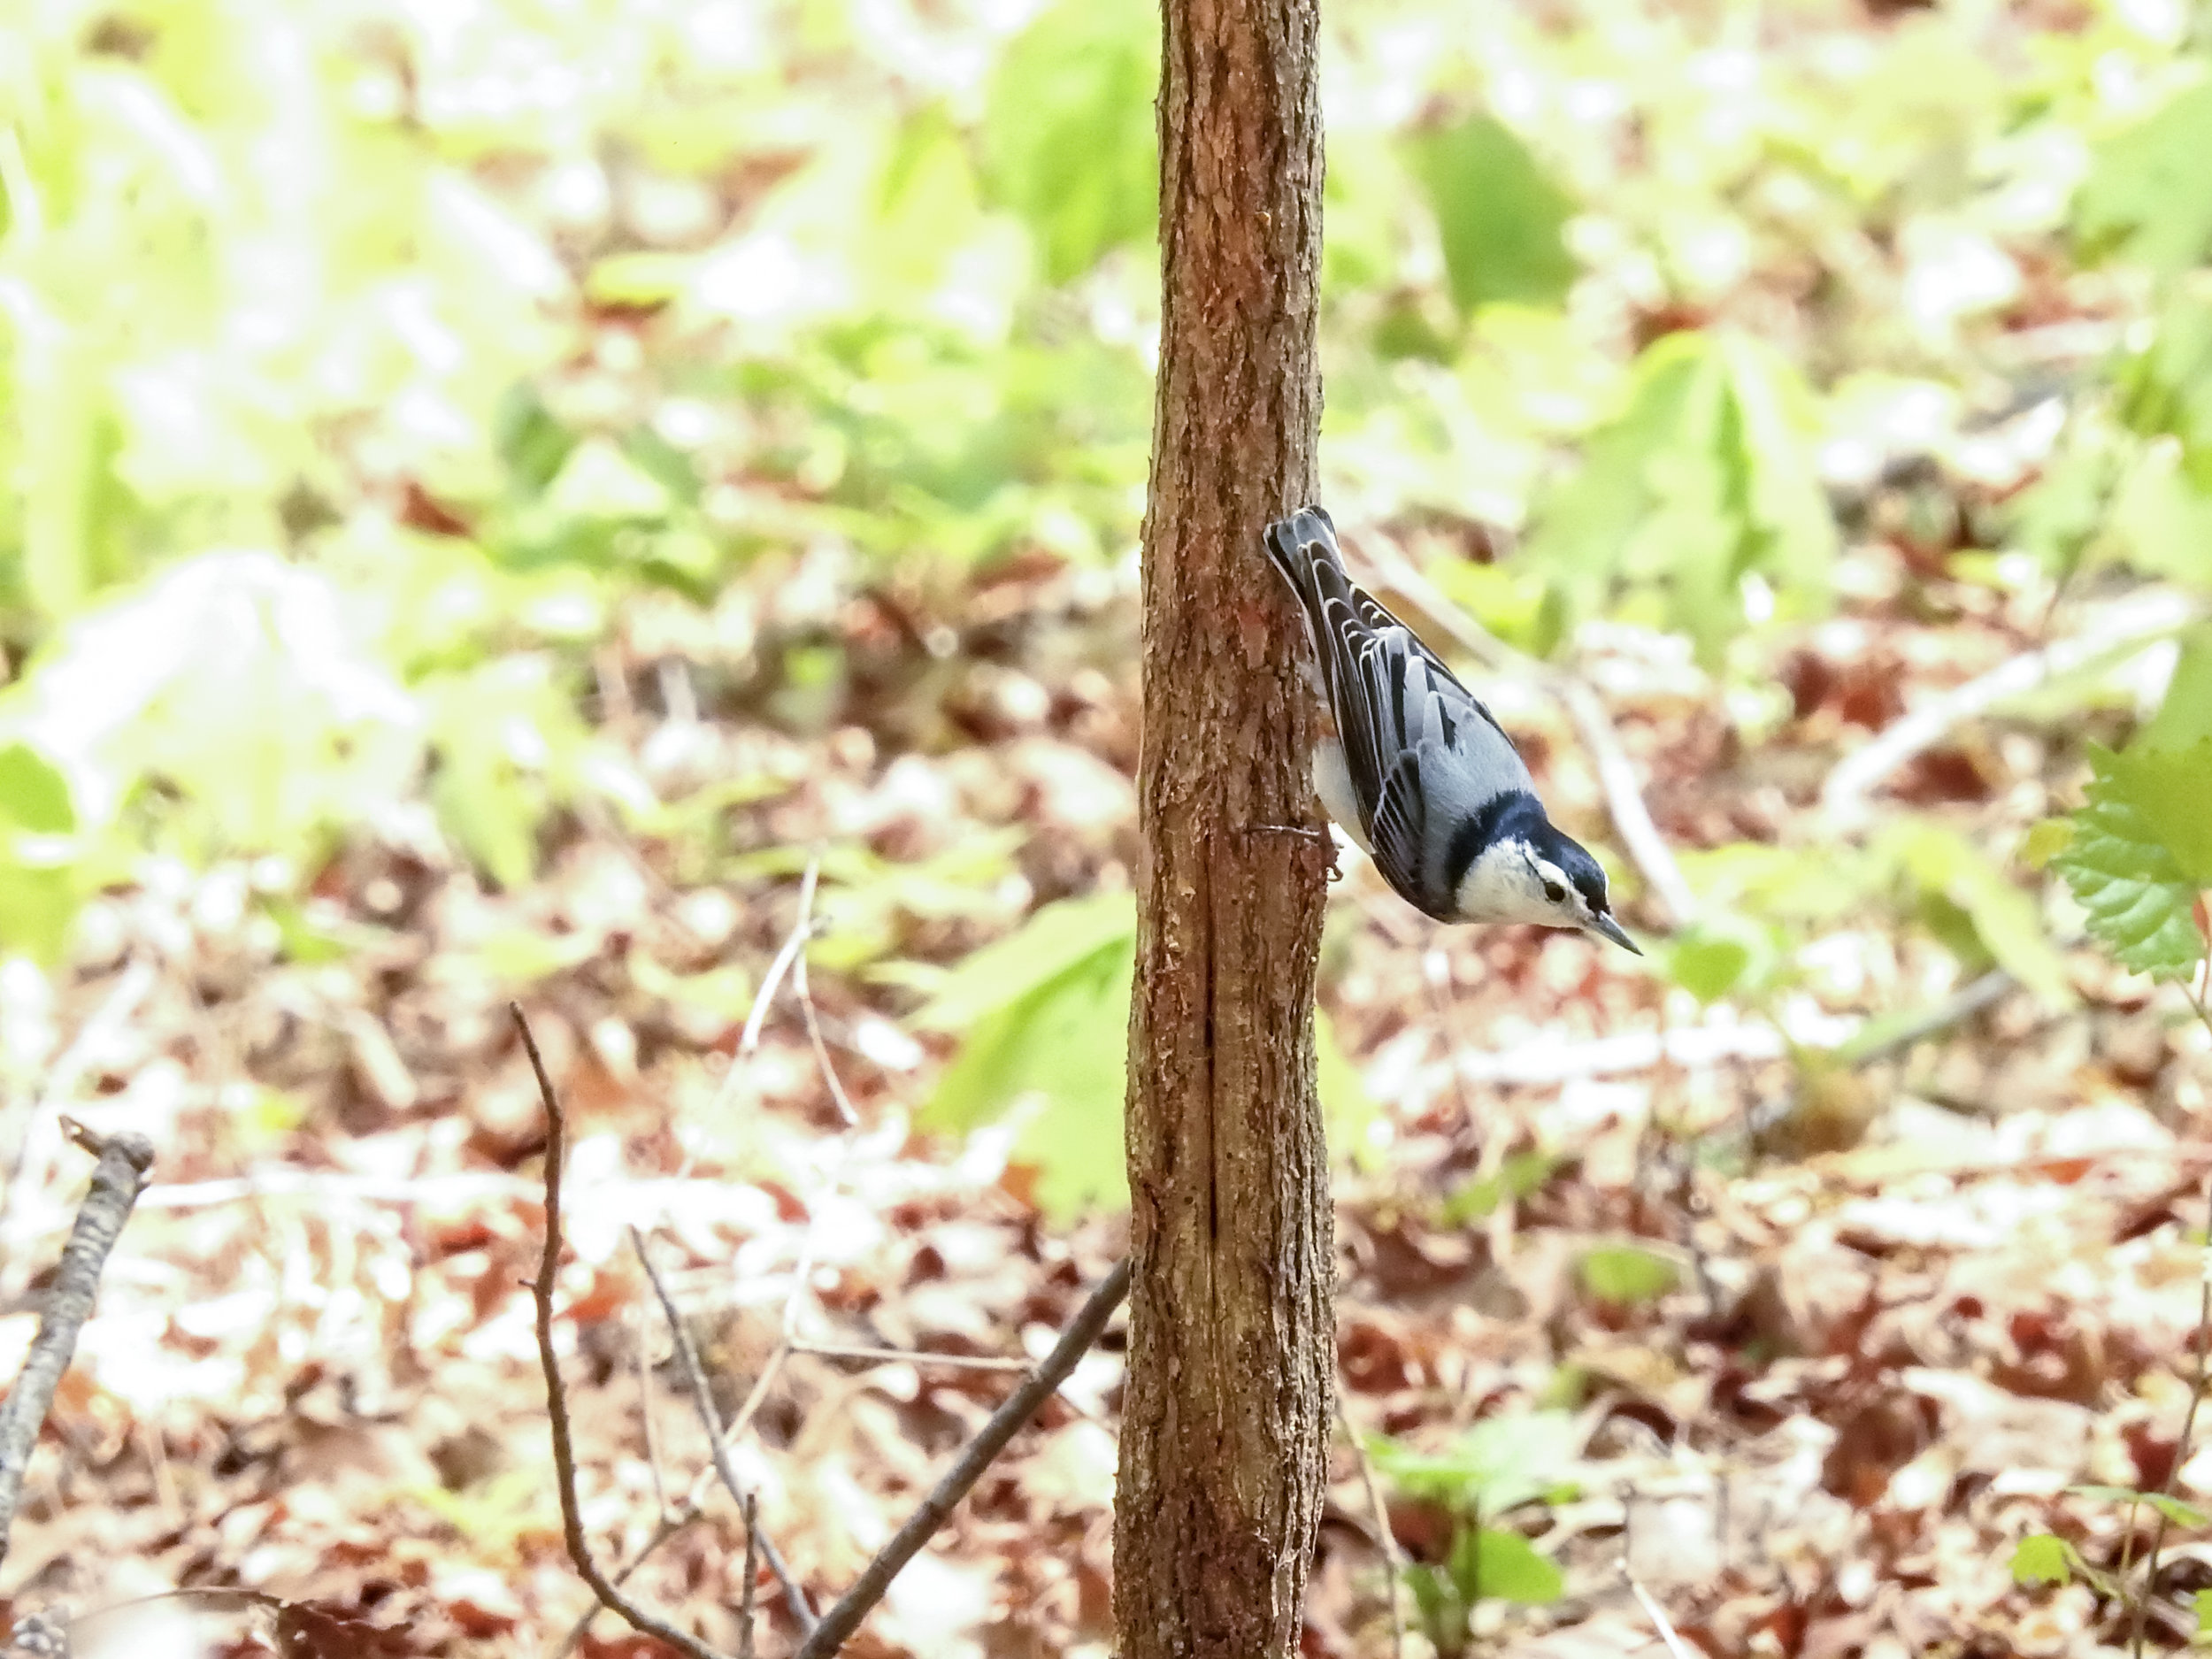 White-Breasted Nuthatch, April 14, 2018